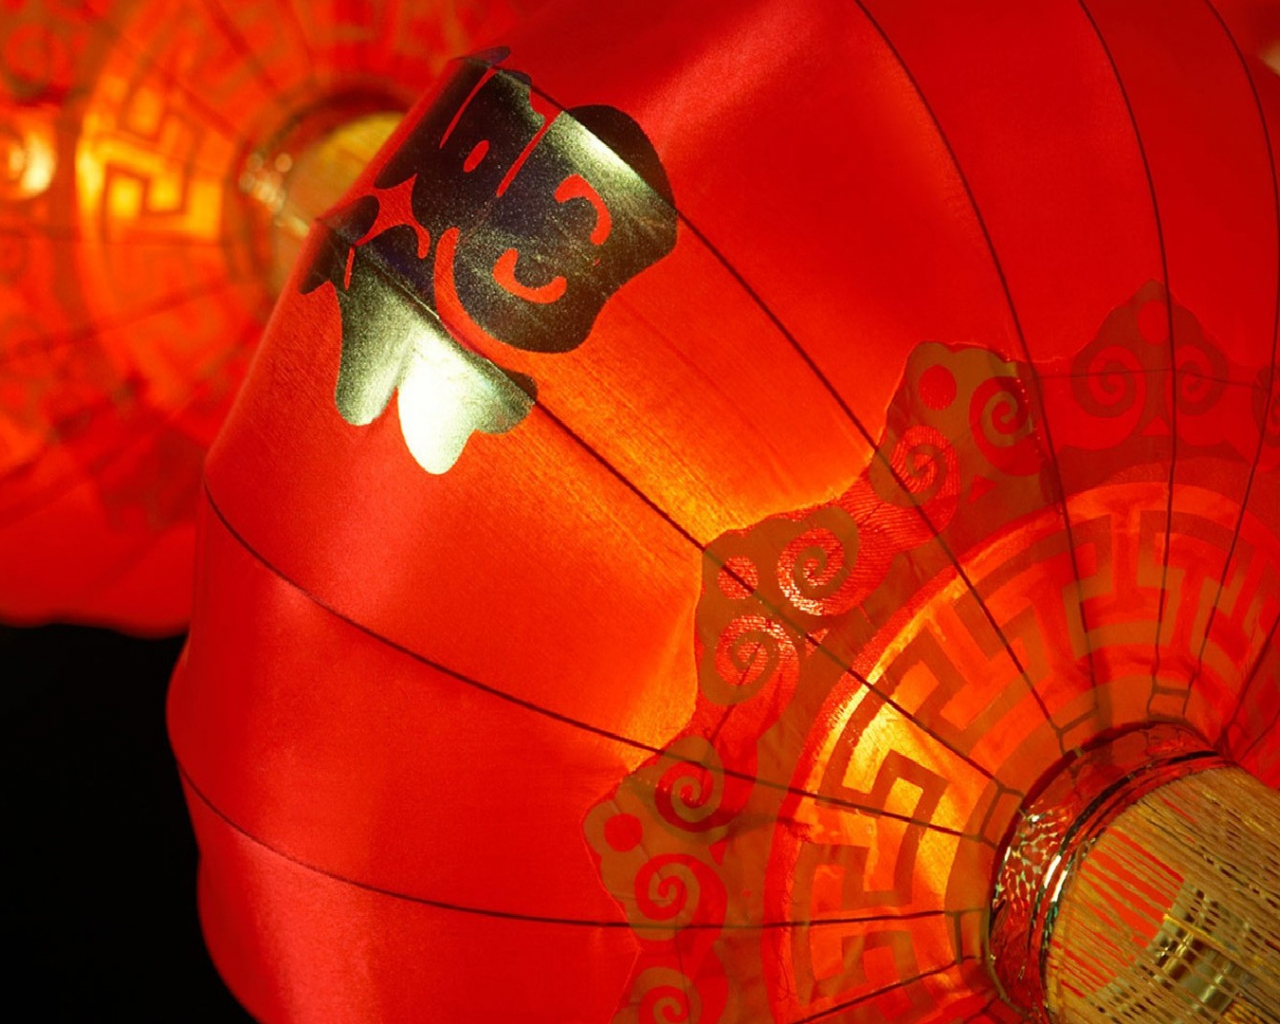 Free Download Chinese New Year 2014 Wallpapers Wallpaper High Definition High 1920x1080 For Your Desktop Mobile Tablet Explore 47 2014 Cute Asian Wallpaper Cute Wallpapers For Laptops Cute Wallpapers